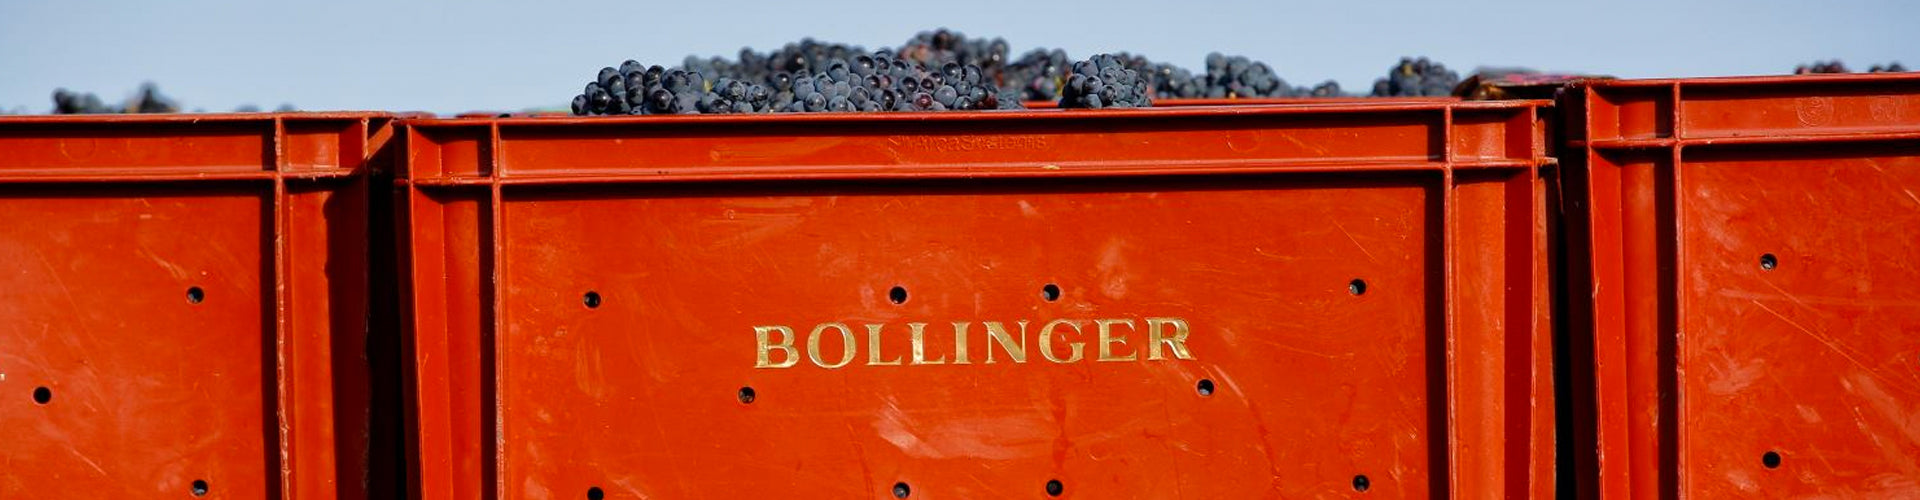 Champagne Bollinger Grapes in Picking Crates